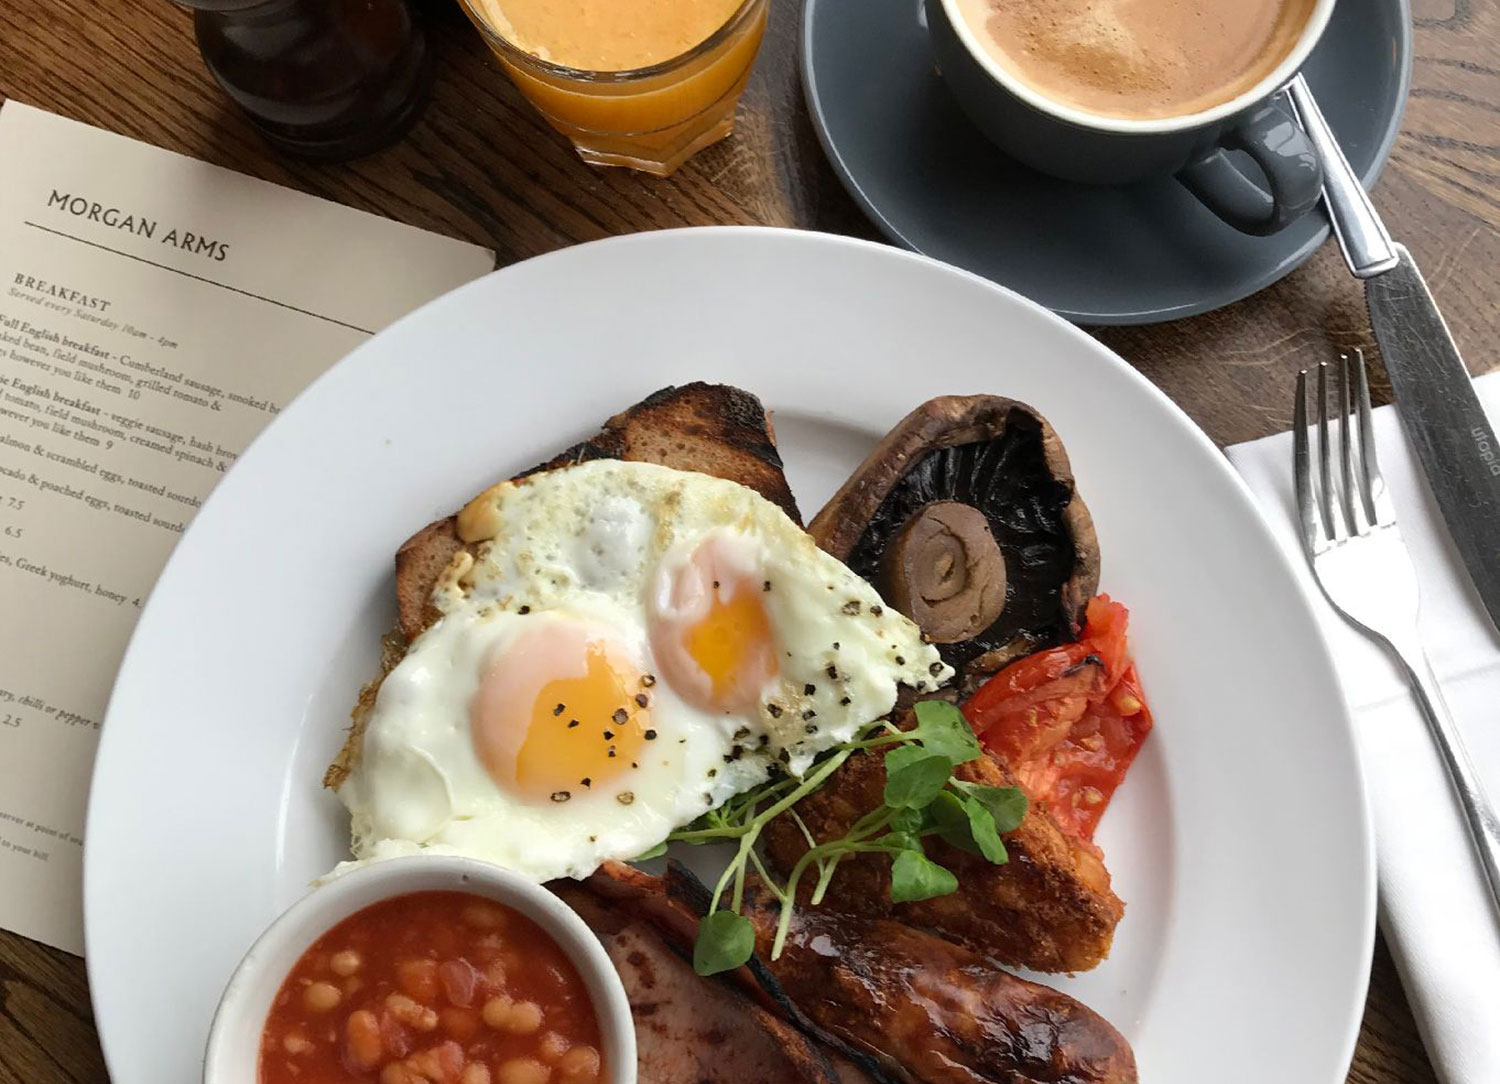 The Morgan Arms pub Bow full english fry up